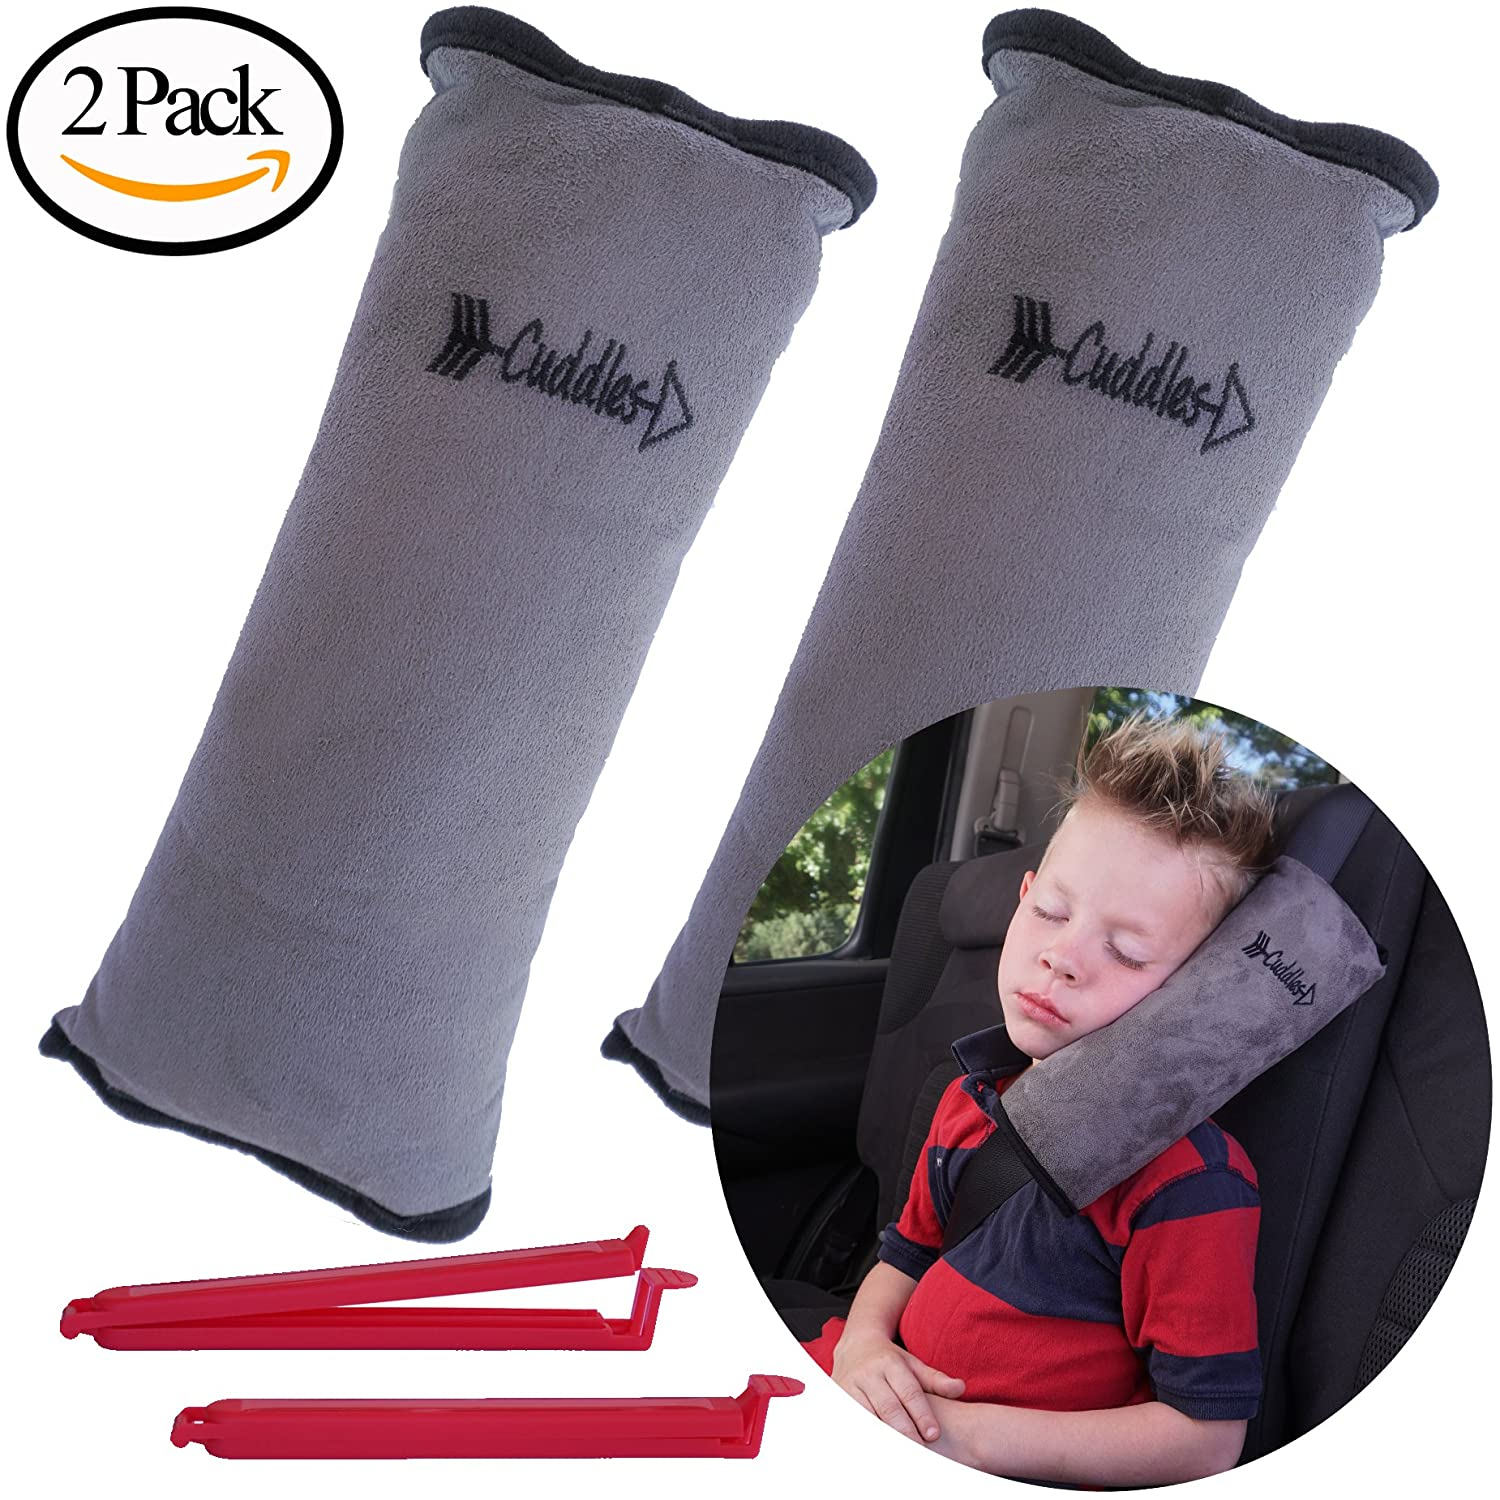 Seat Belt Pillow for Kids by Cuddles | 2 Pack Seatbelt Pillow| seat Belt Pillows| Kids Seatbelt Pillow| Seatbelt Pillow for Kids| car Travel Head Cushion, Washable Cover, Headrest Gray 2 Pack Cuddles Baby Goods